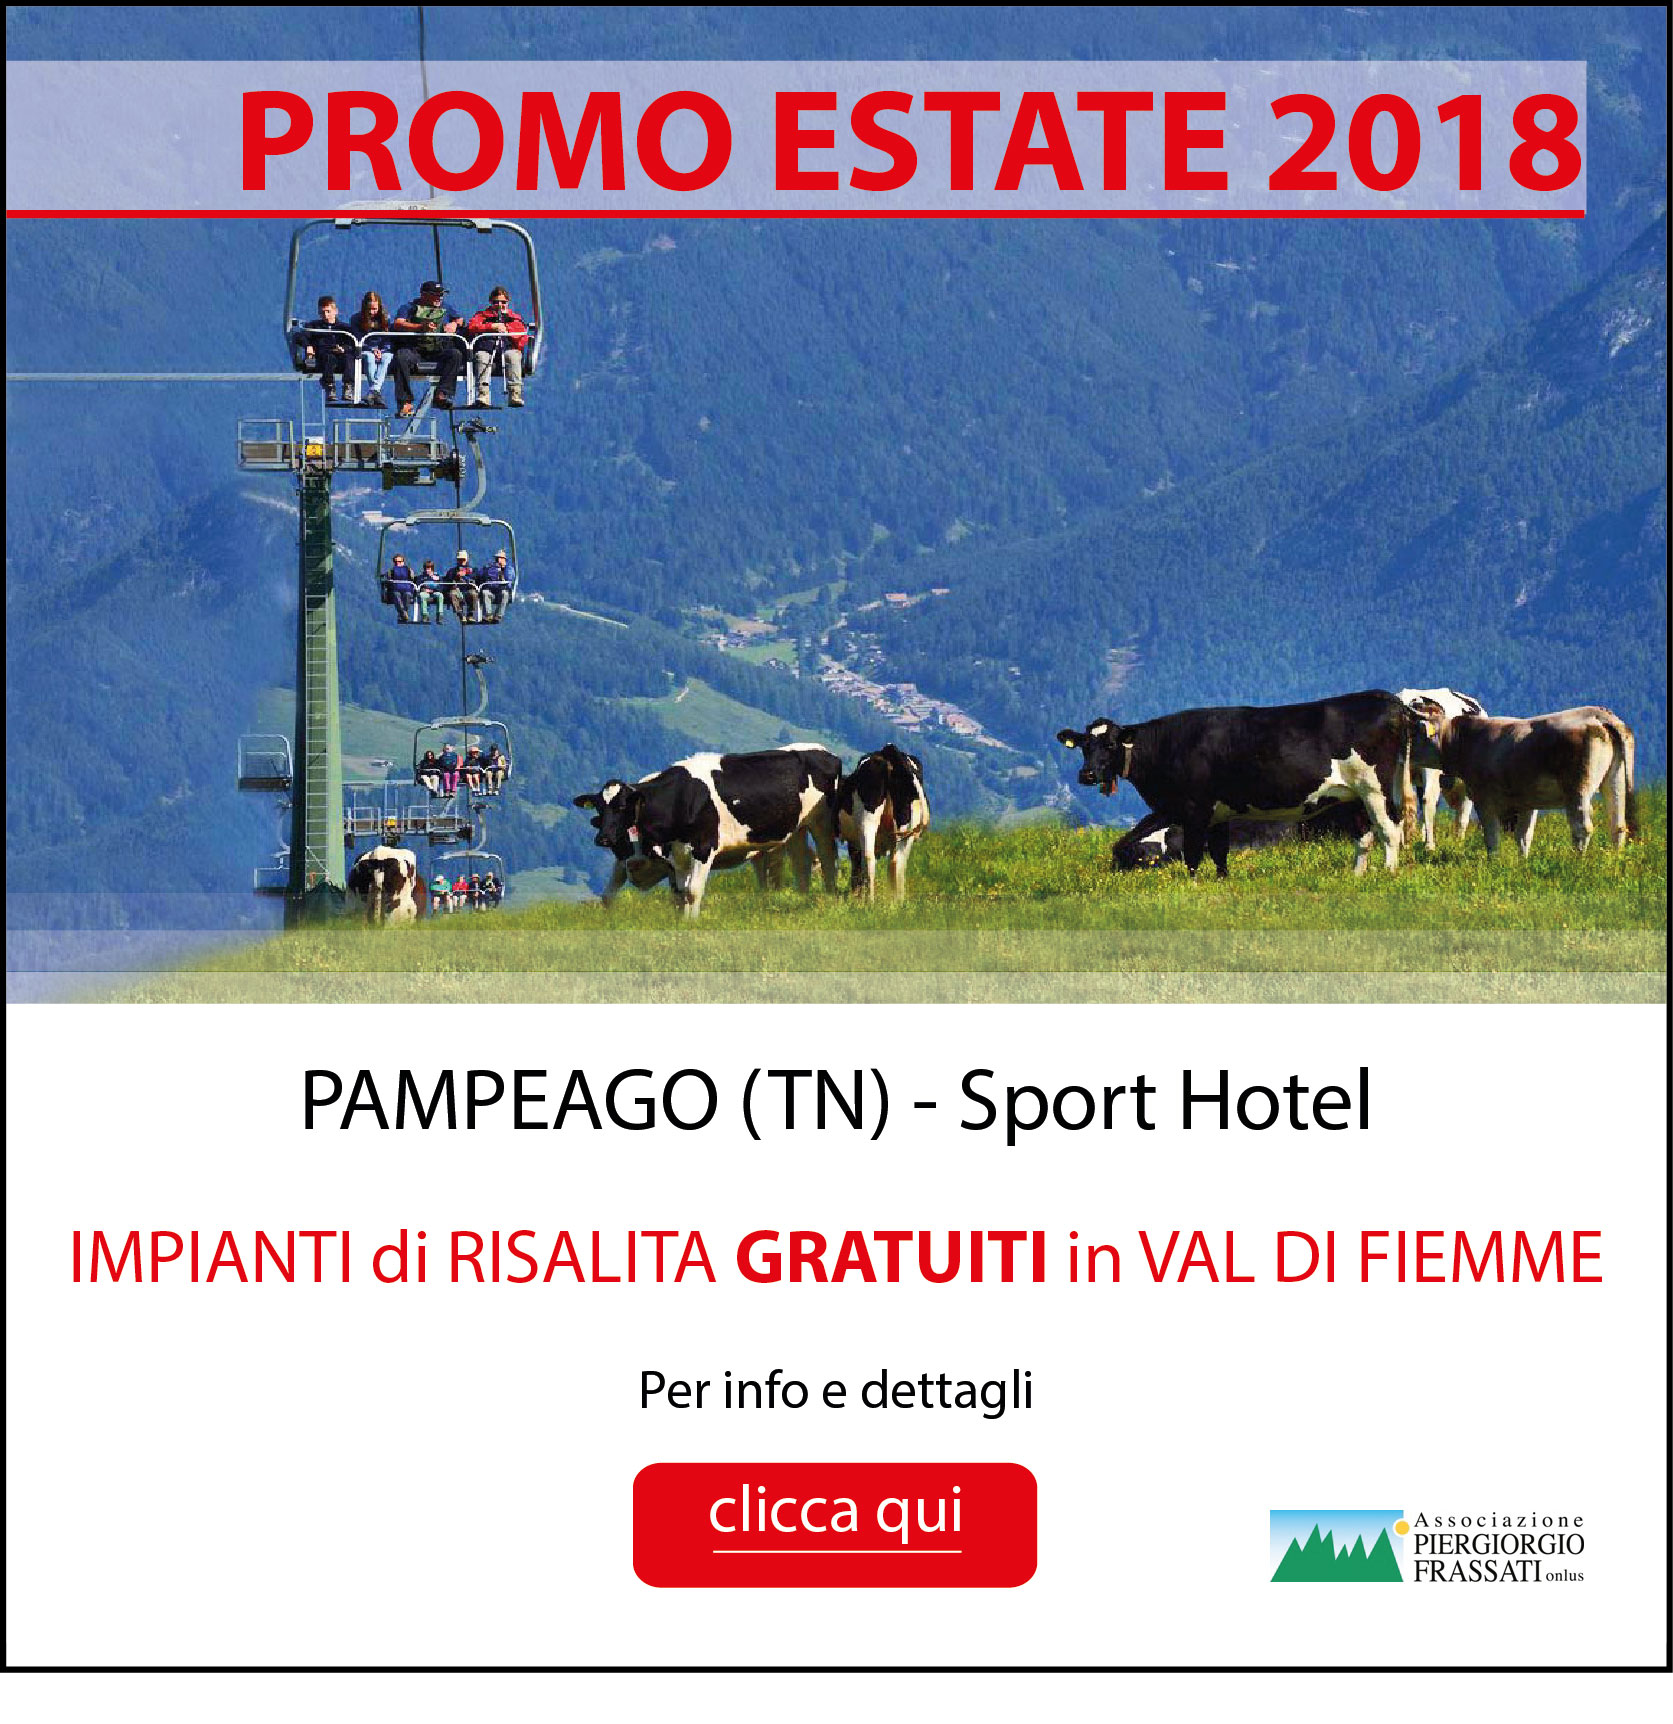 PAMPEAGO---Promo-Estate-2018